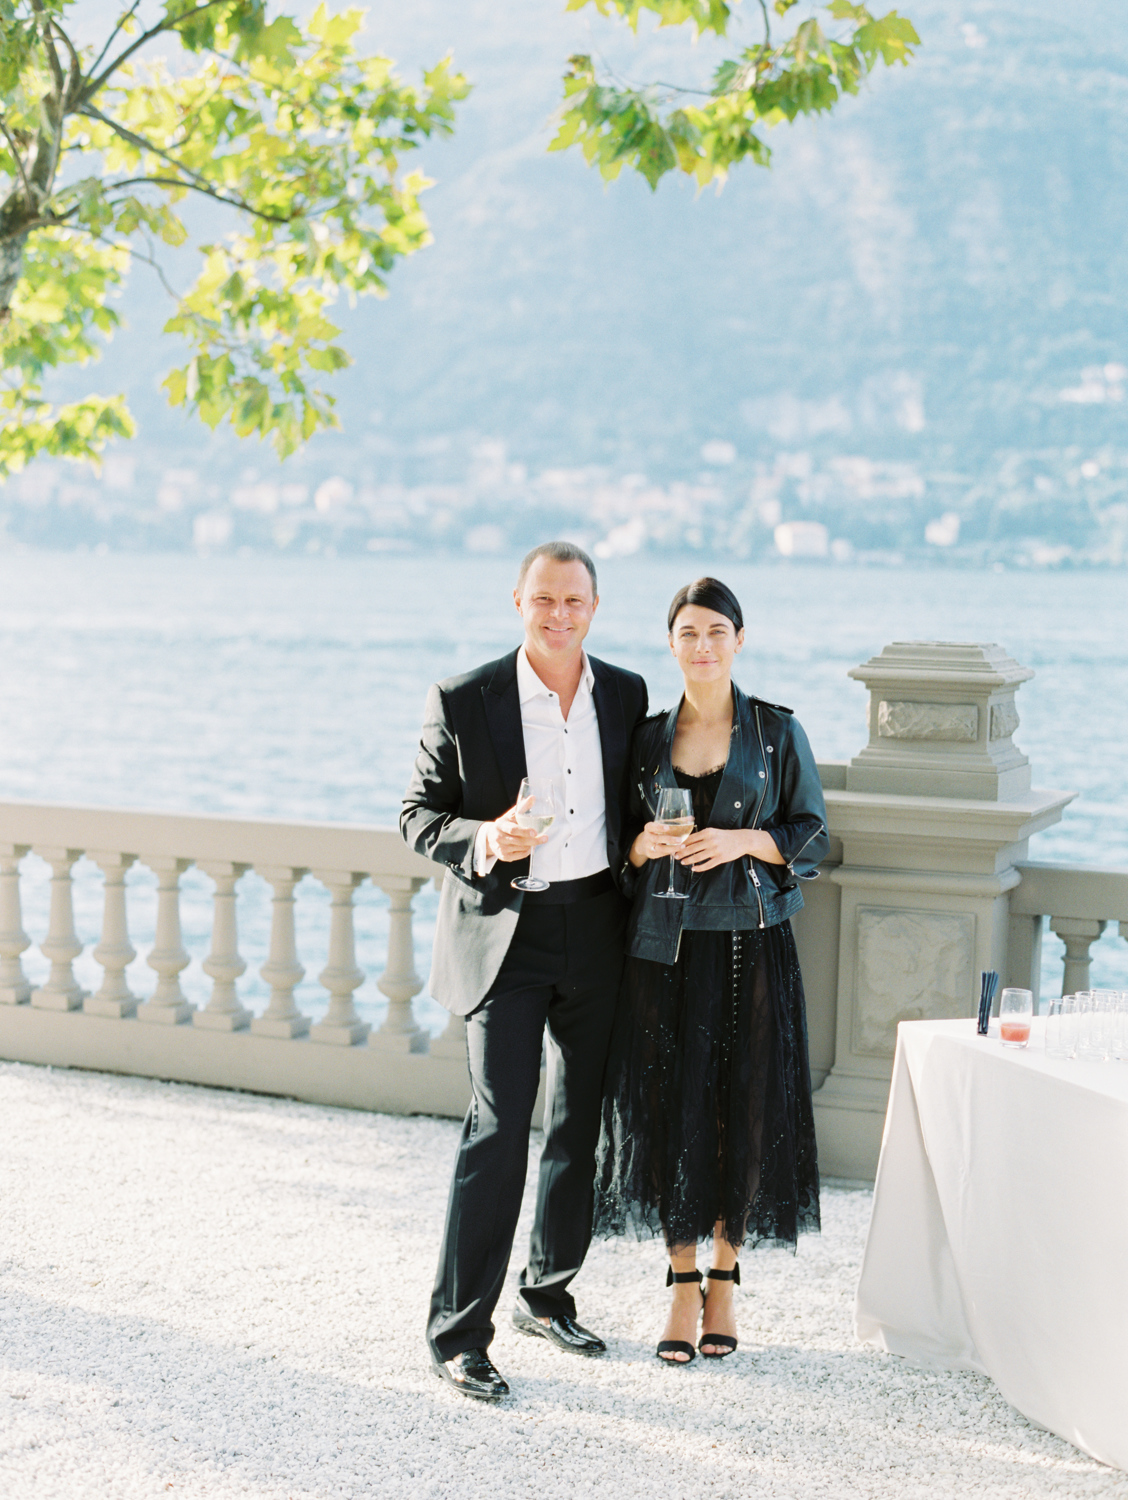 Smiling guests with glass of sparkling wine at wedding on lake como